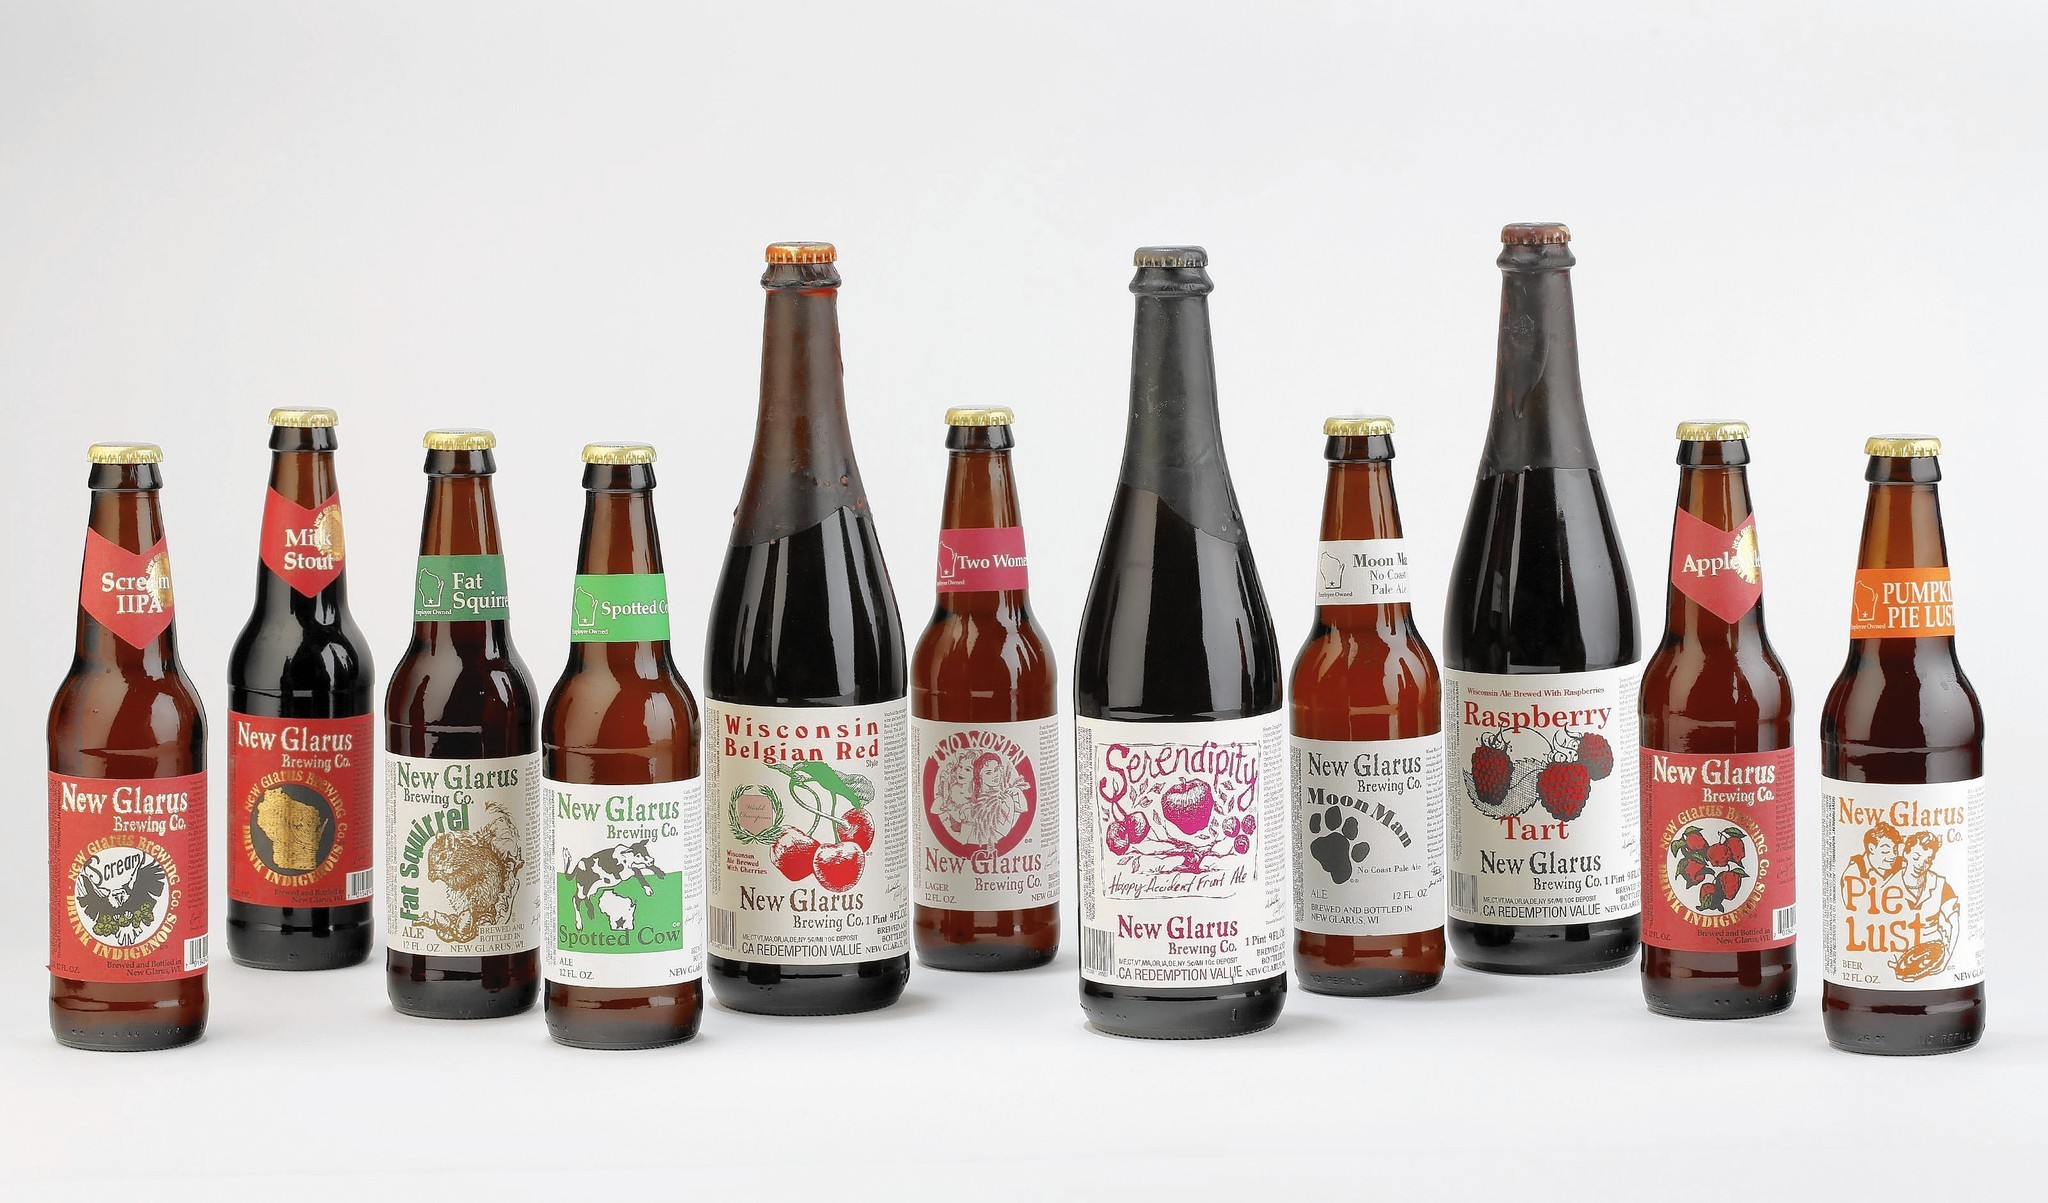 New Glarus beer is legendary, but is it worth the drive?